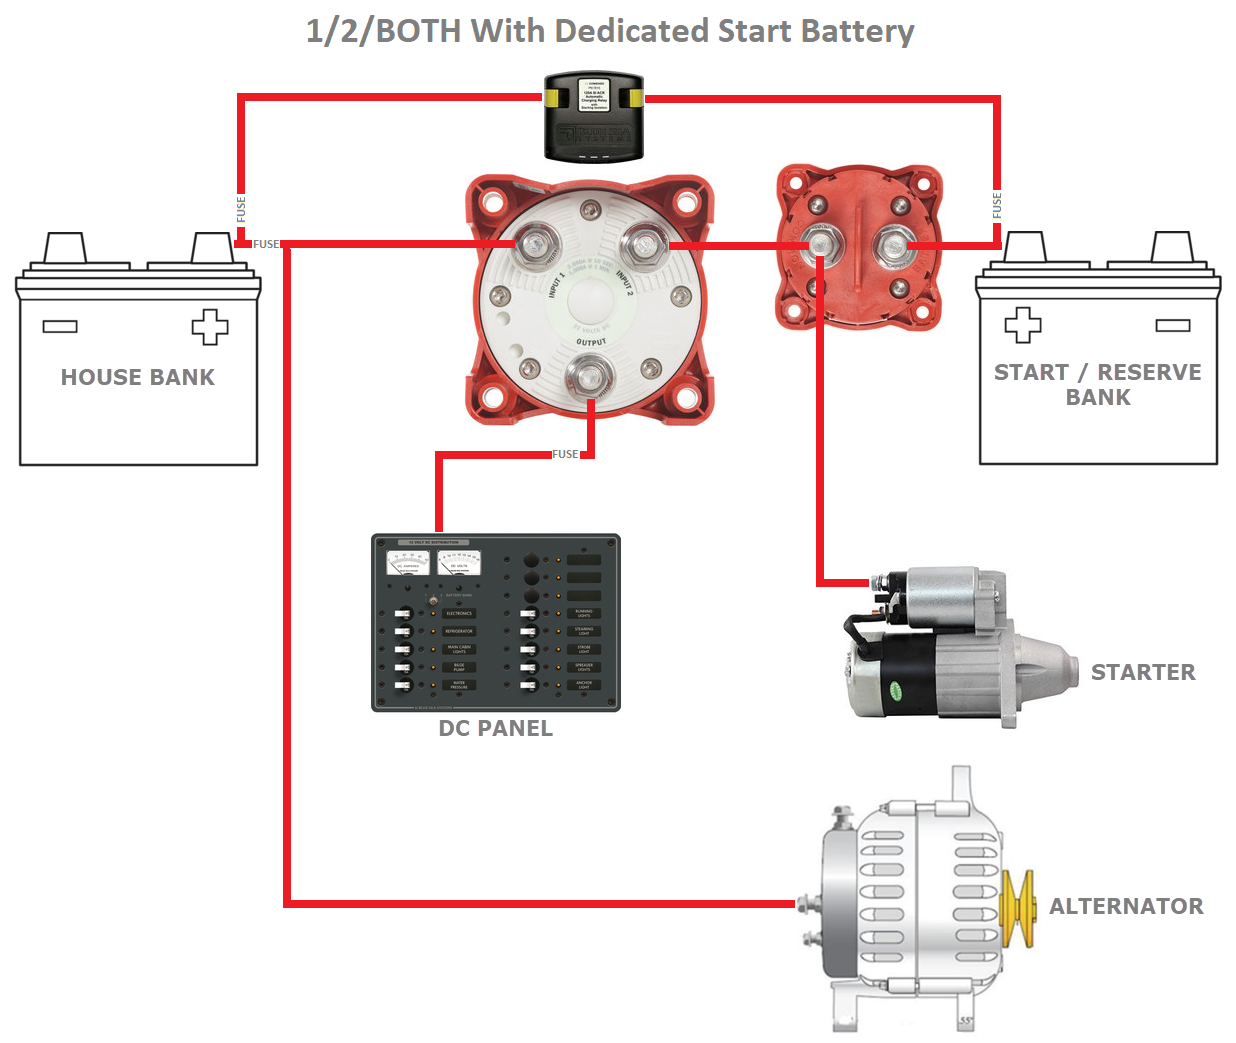 1/2/BOTH Battery Switch Considerations - Marine How To | Guest Battery Switch Wiring Diagram |  | MarineHowTo.com